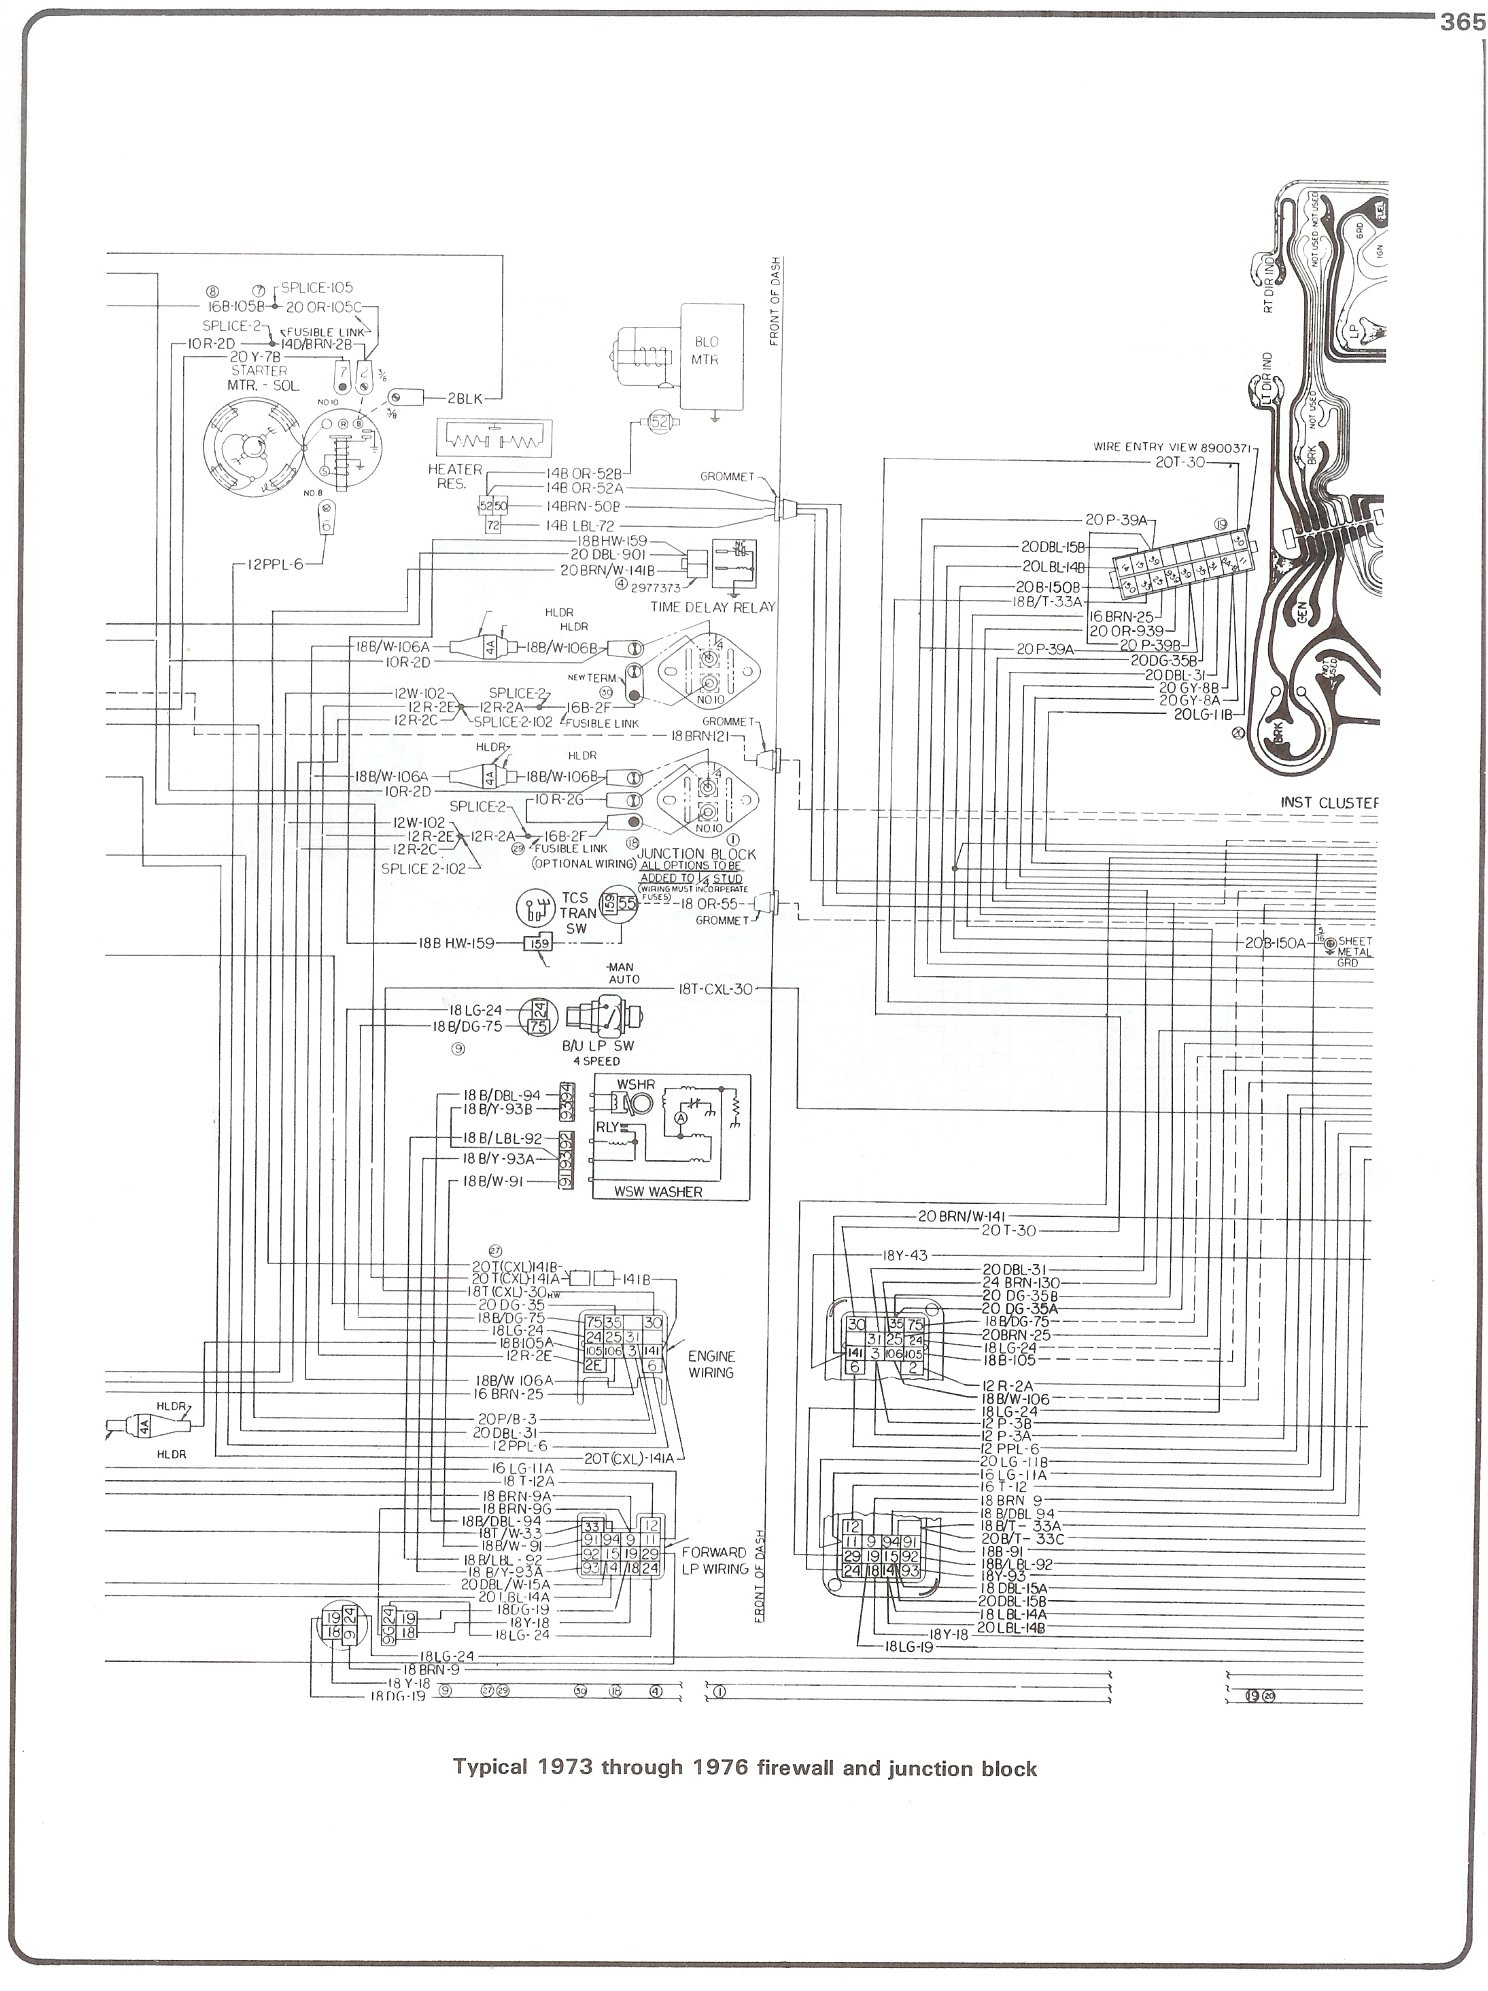 Horn Wiring Diagram Of 76 Opinions About 79 Fiat 124 Schematic Schematics Diagrams U2022 Rh Parntesis Co Gm